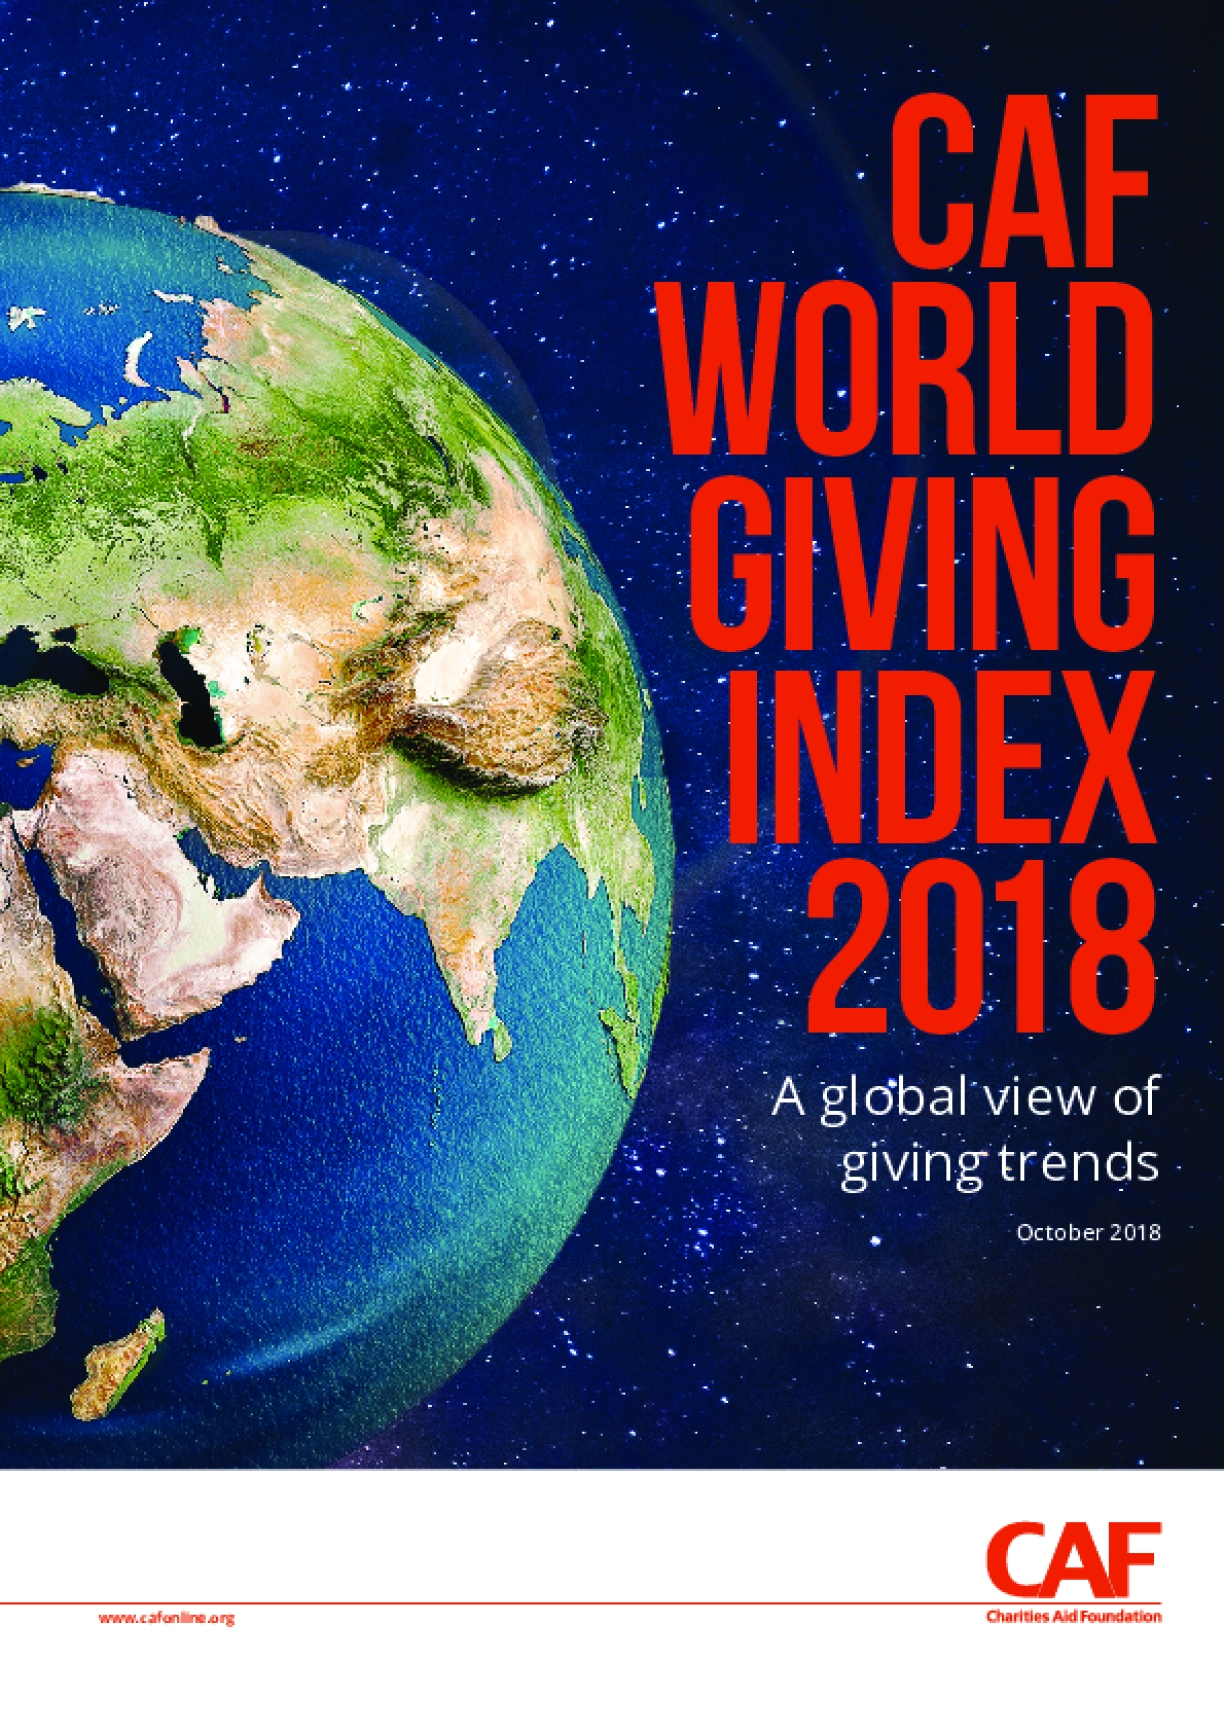 CAF World Giving Index 2018 : A Global View of Giving Trends